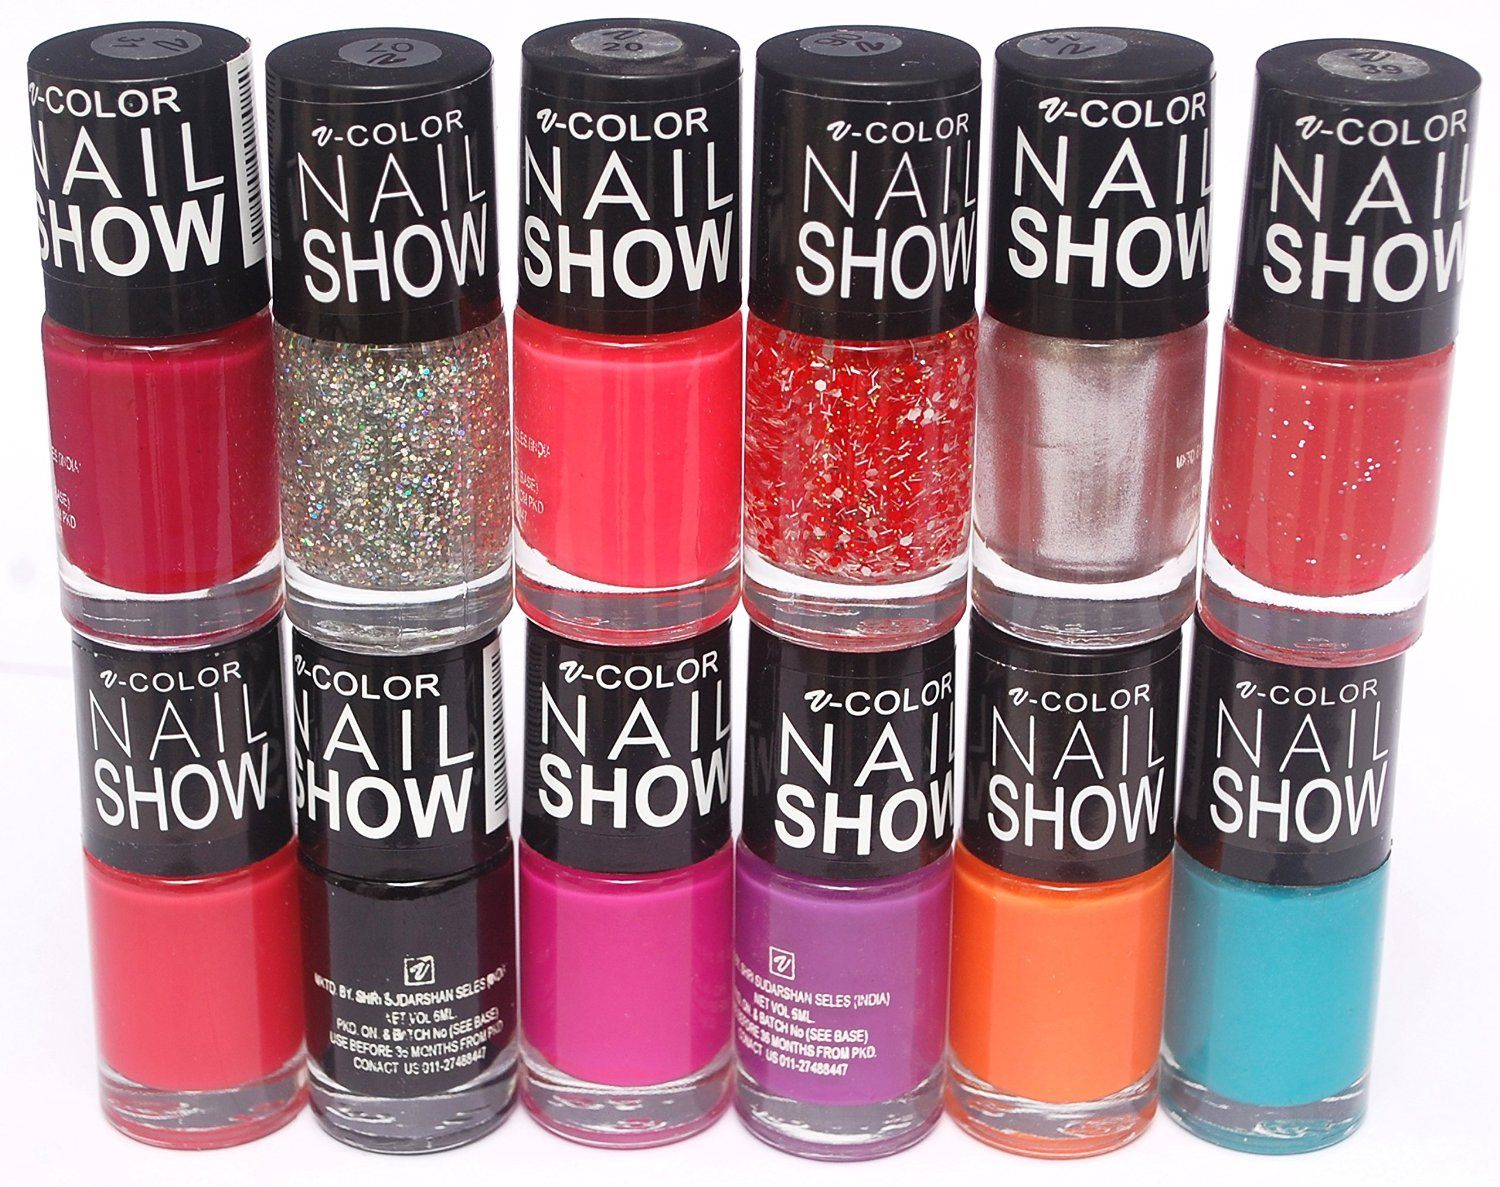 Top 10 Maybelline Nailpolish At Low Price In India | Women All ...